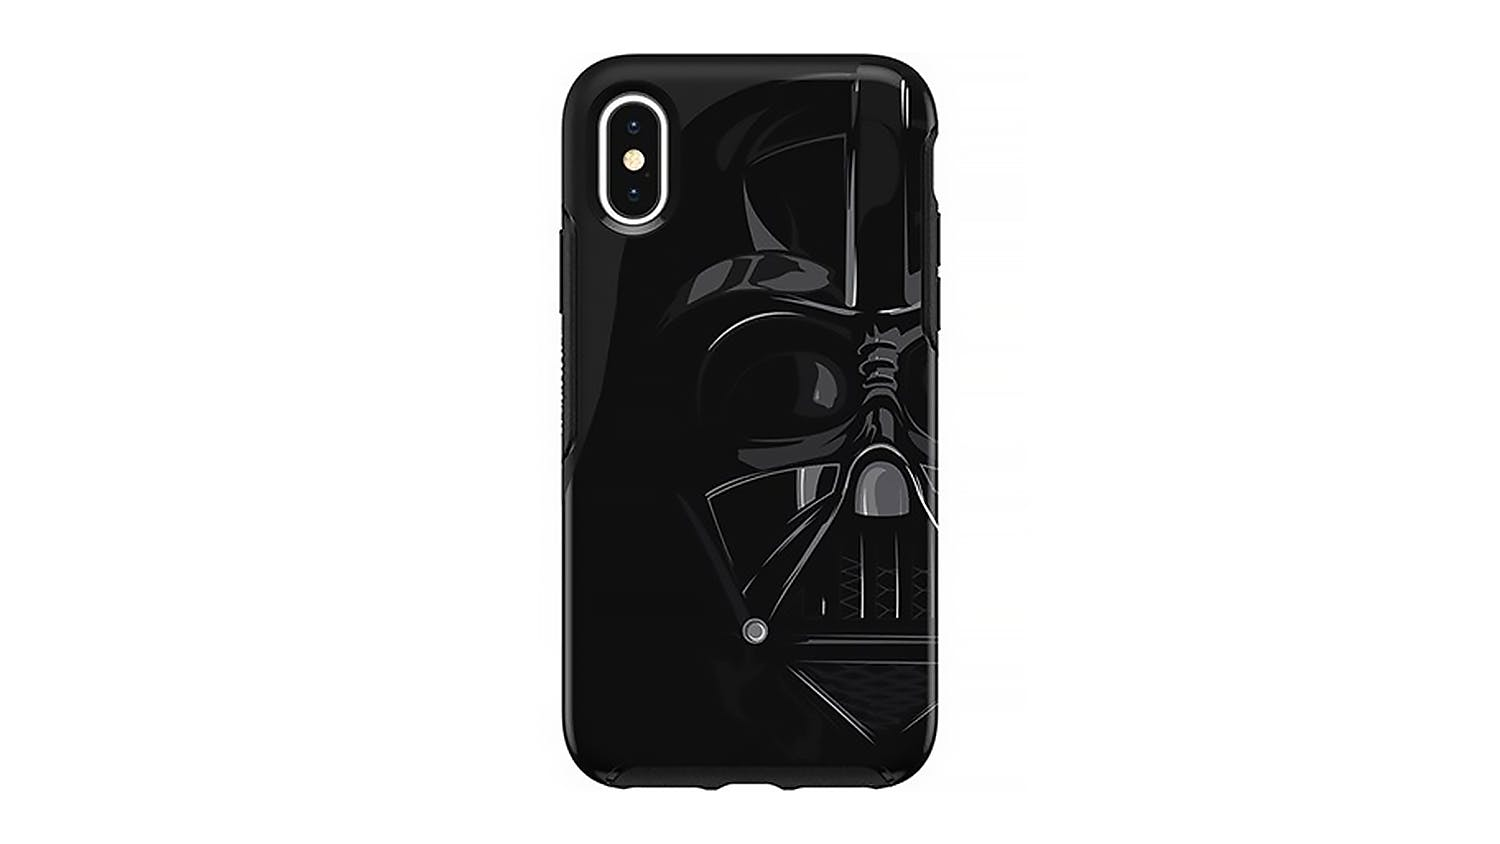 Otterbox Symmetry Darth Vader Case for iPhone XS